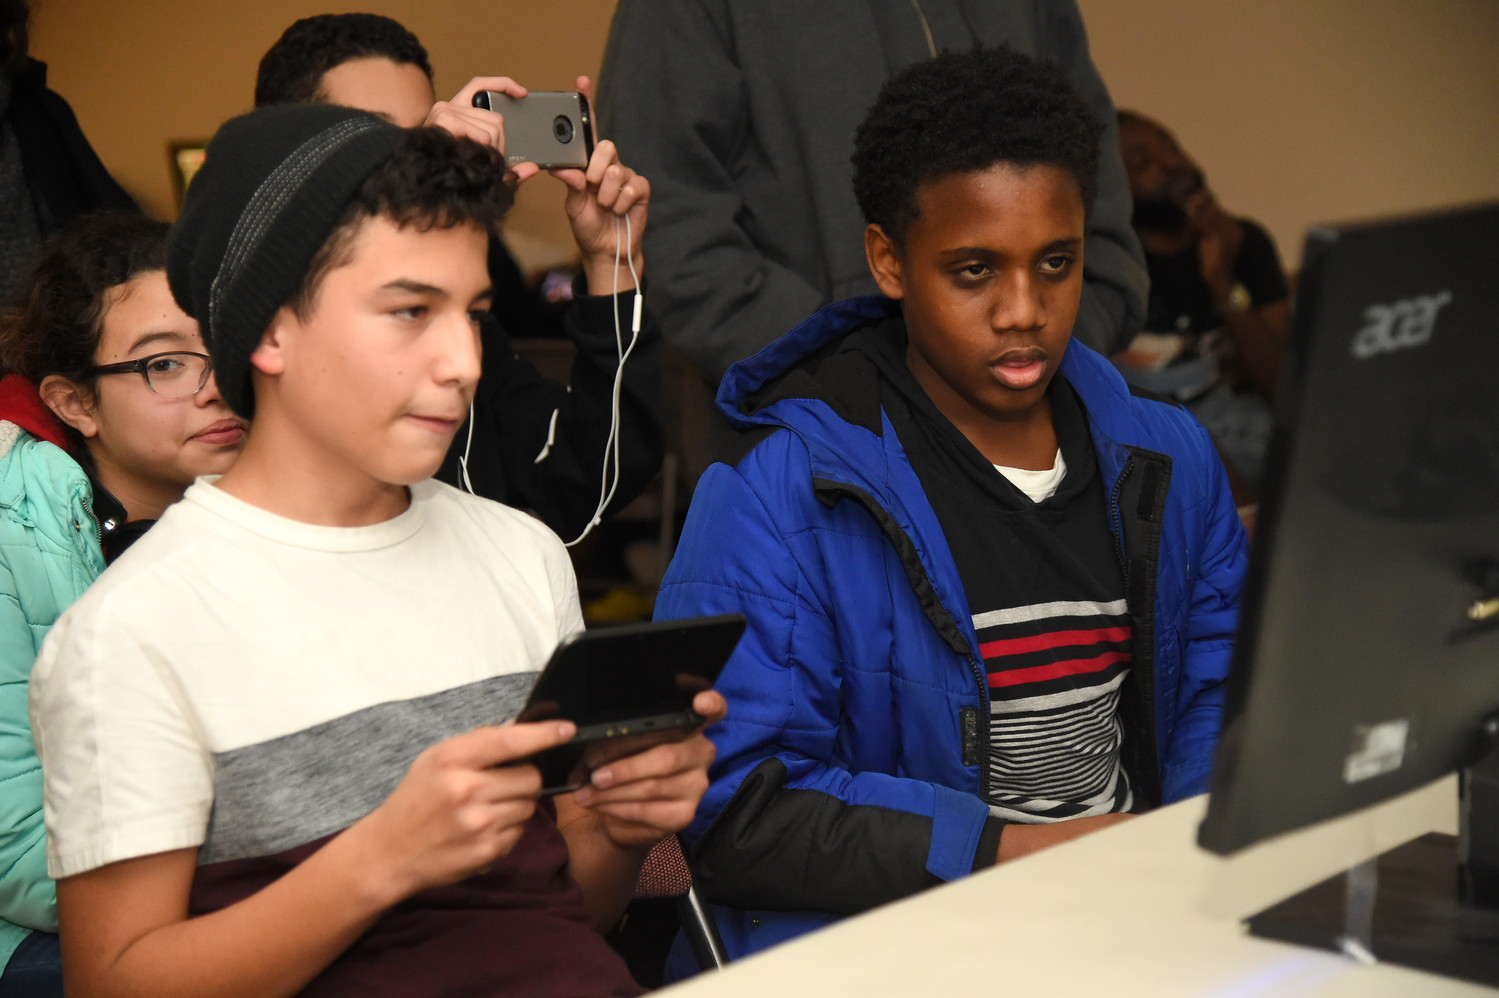 Making their way to the final round, Kenny Hernandez, 14, left and Daven Lewis, 13, right, went head to head during the Smash Freeport video game tournament held at the Freeport Memorial Library on Dec. 15.